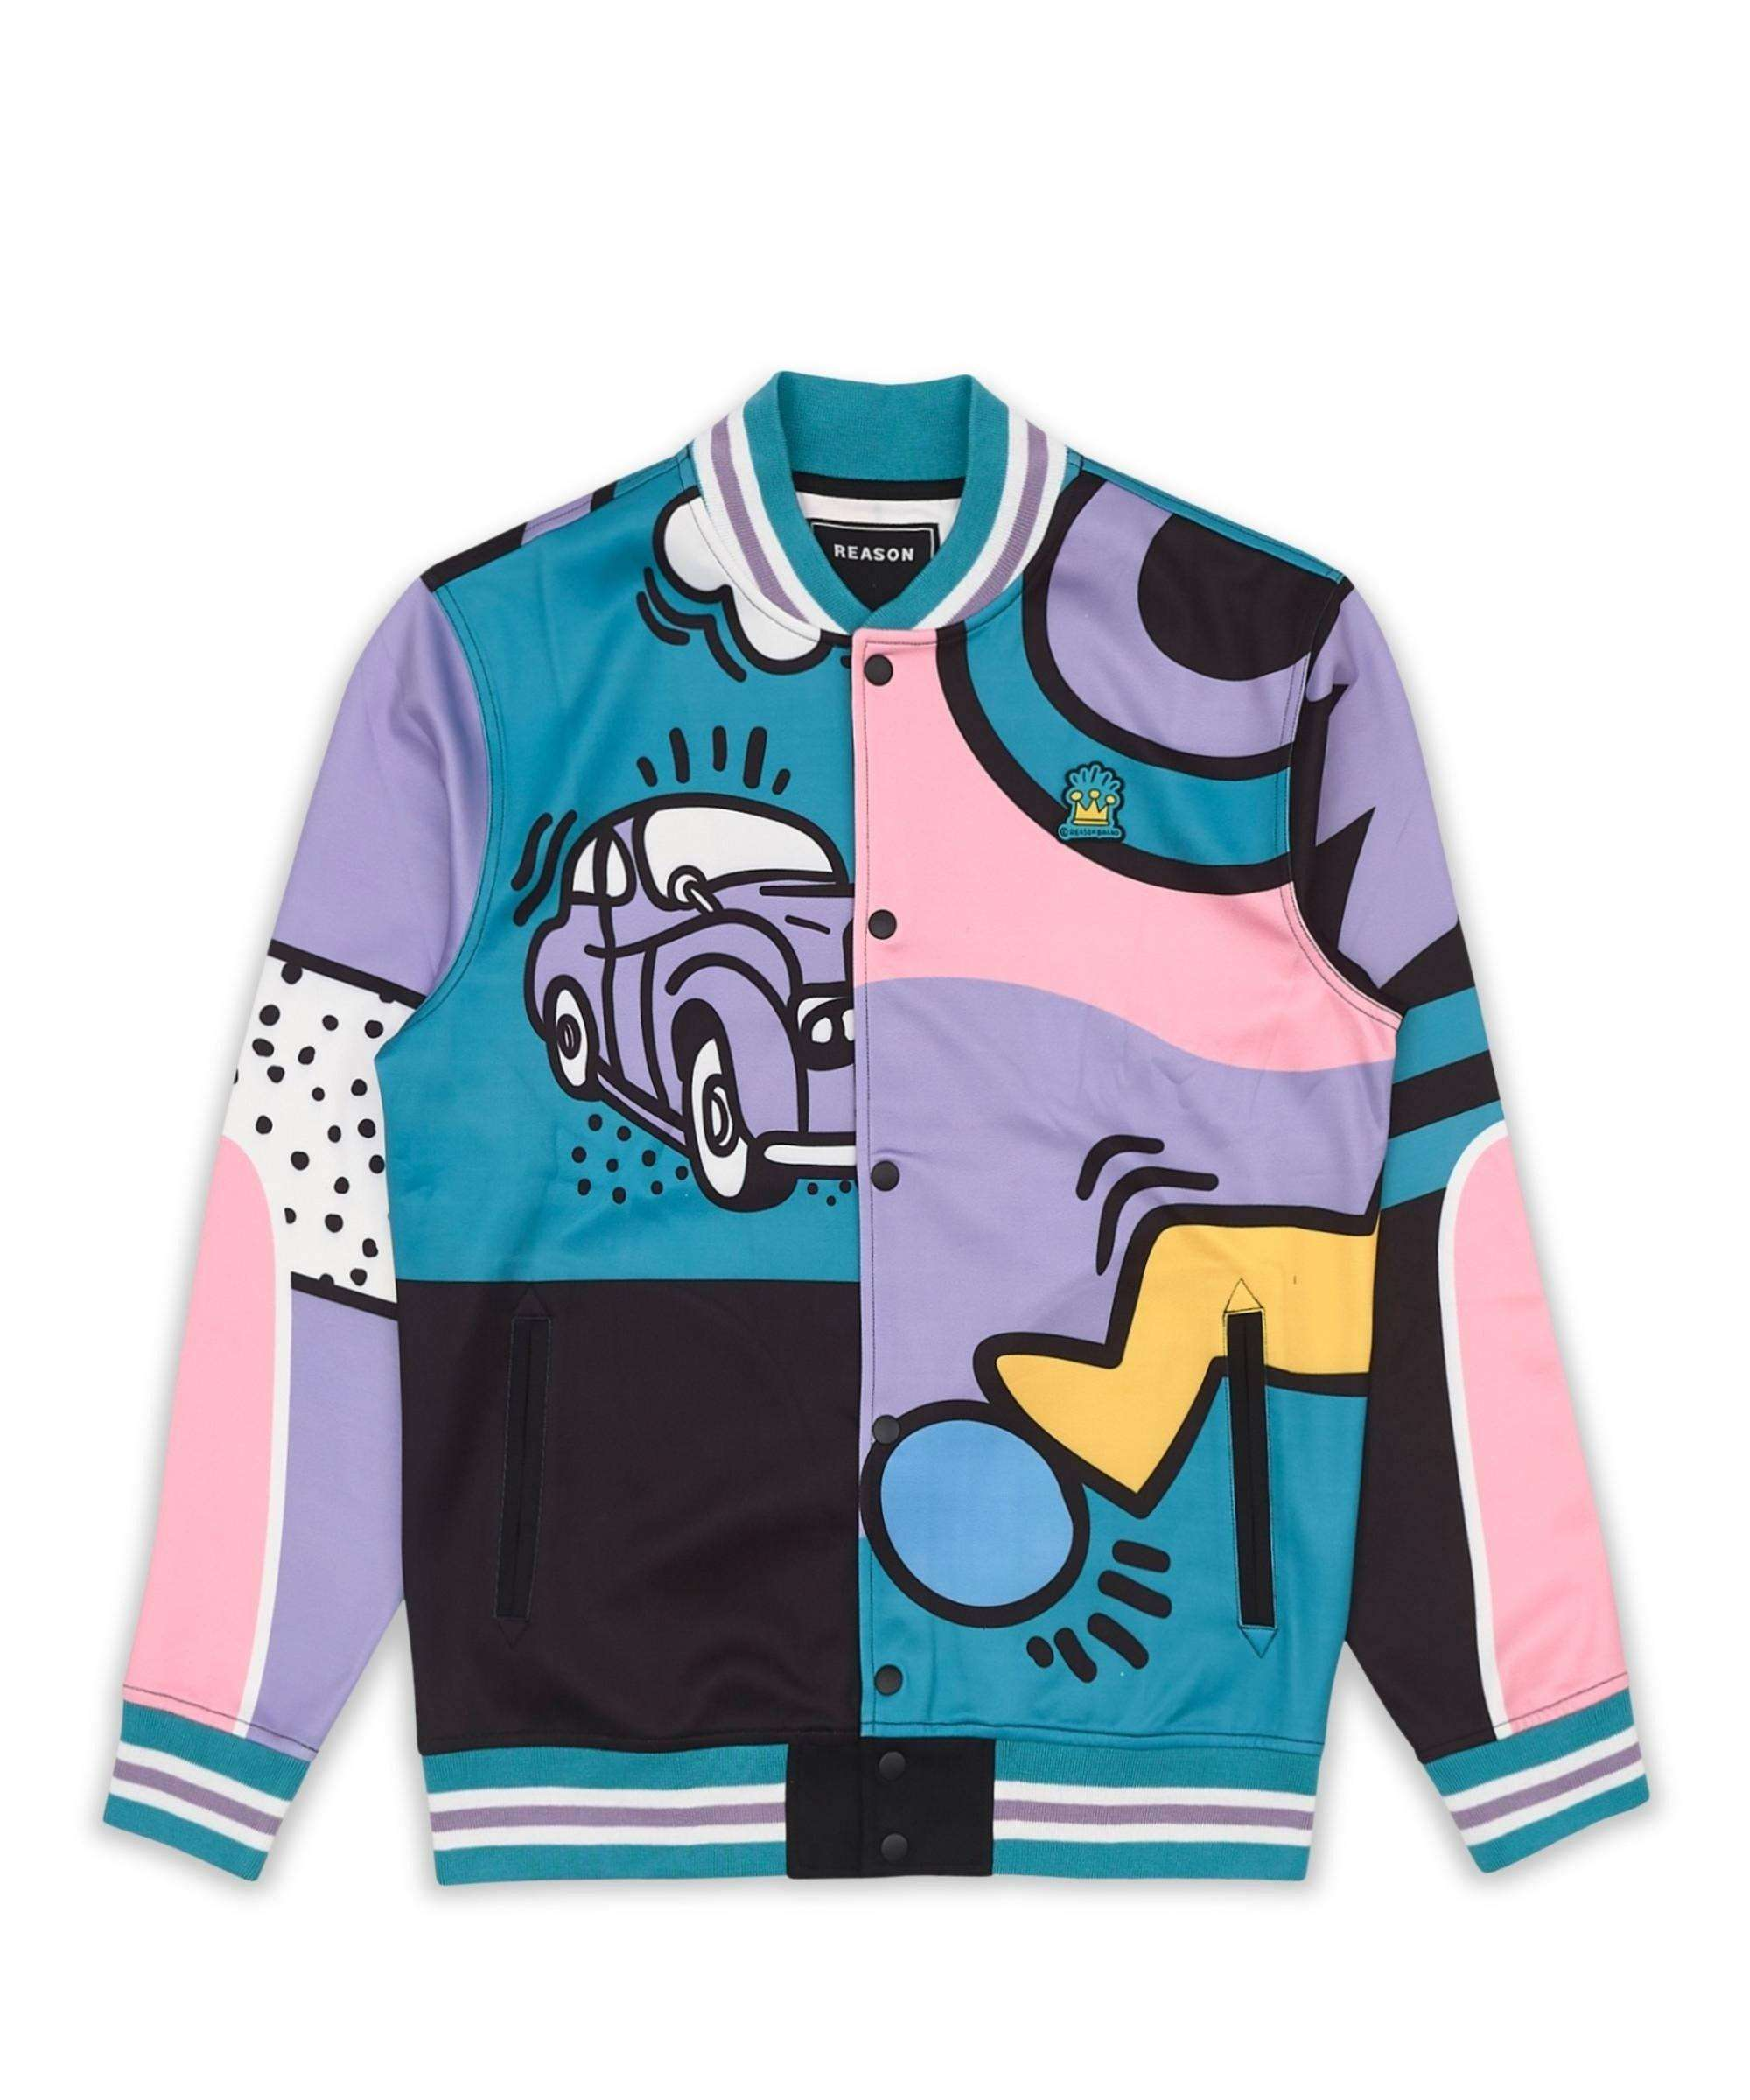 PARTY BLOCK TRACK JACKET Reason Clothing